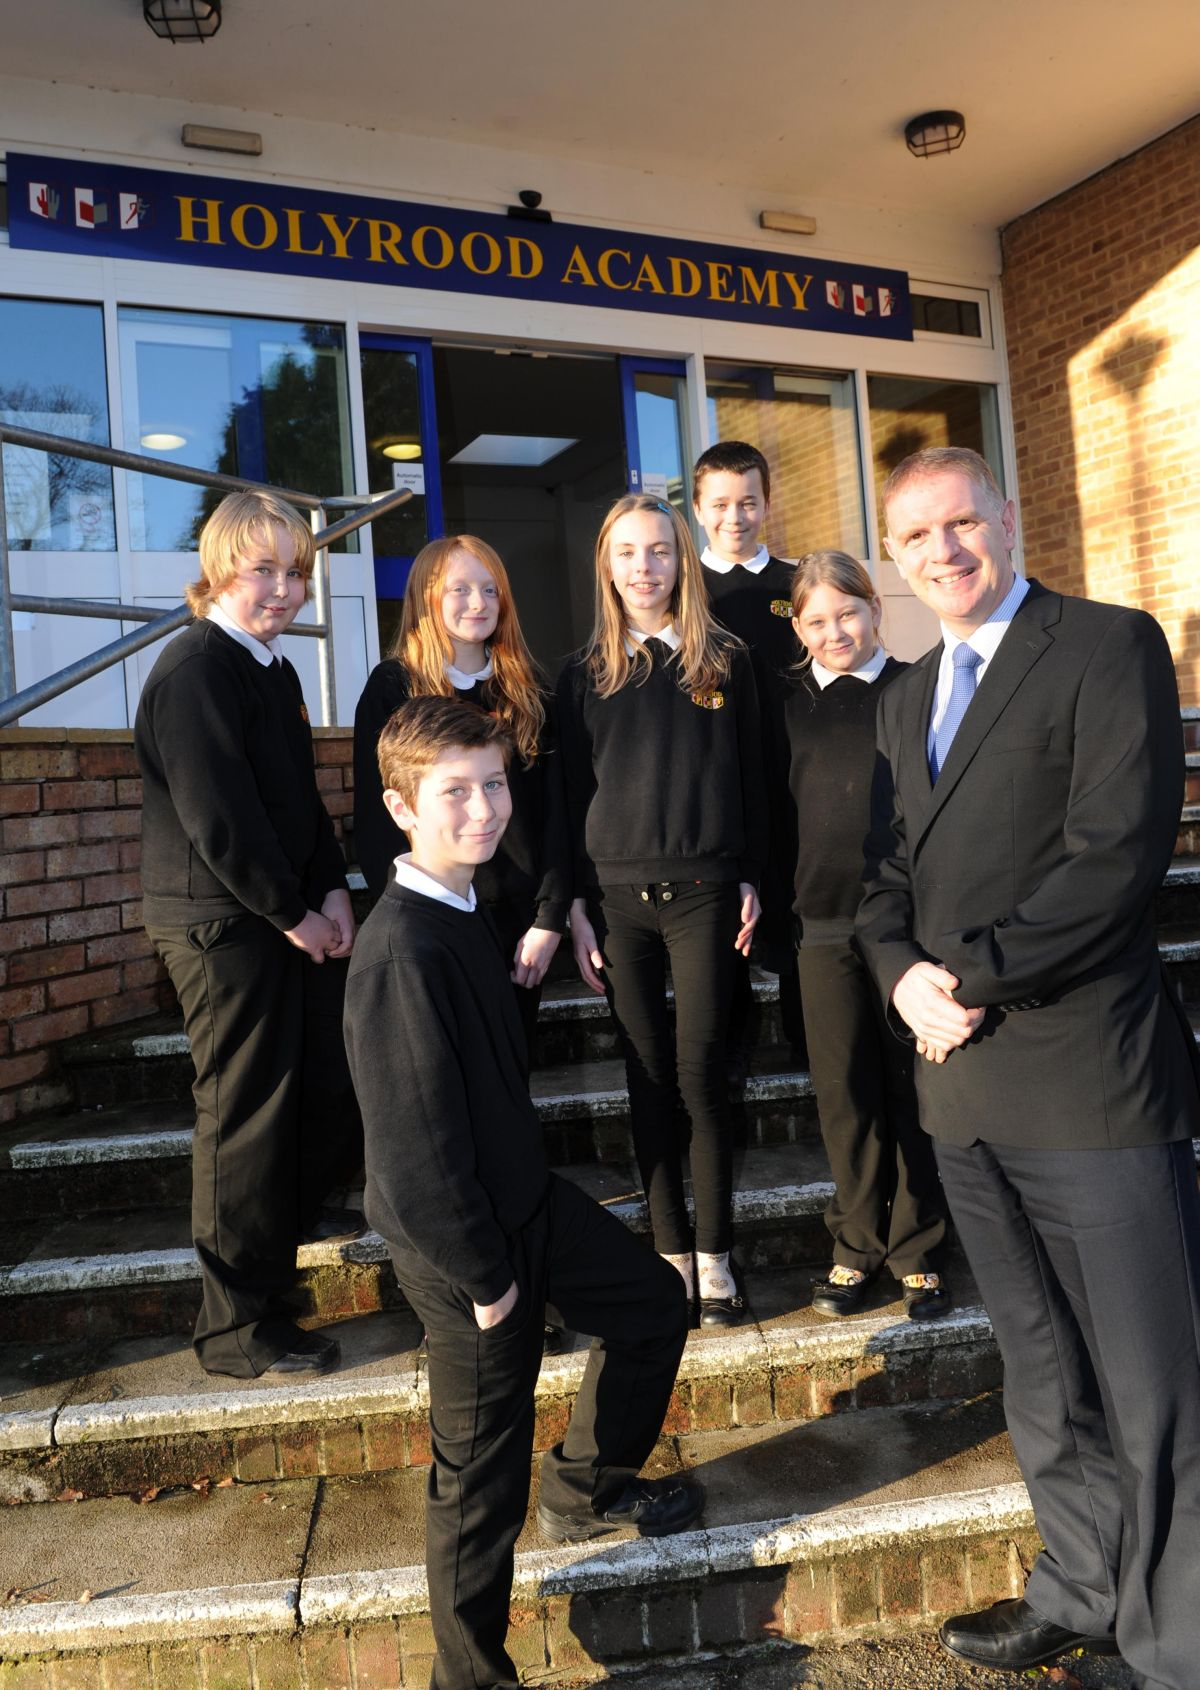 Head teacher Martin Brook with some of the students.